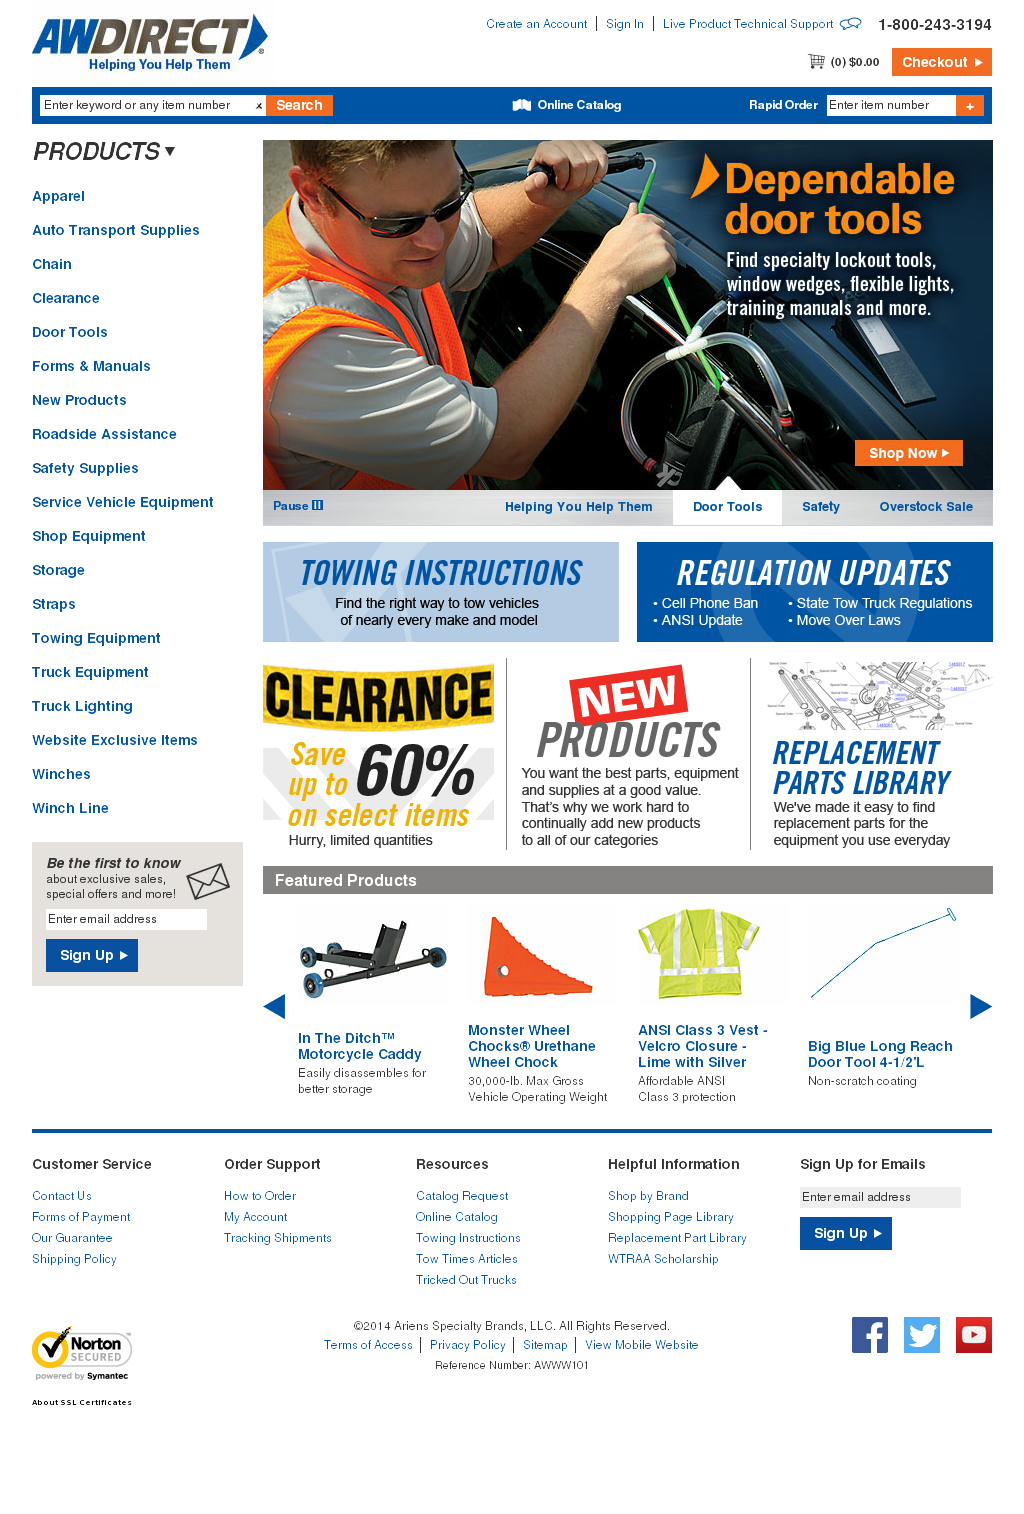 Aw Direct S Competitors Revenue Number Of Employees Funding Acquisitions News Owler Company Profile The industry leader for over 30 years in towing & recovery and work truck for over 30 years, aw direct has been america's leading supplier of service vehicle accessories. aw direct s competitors revenue